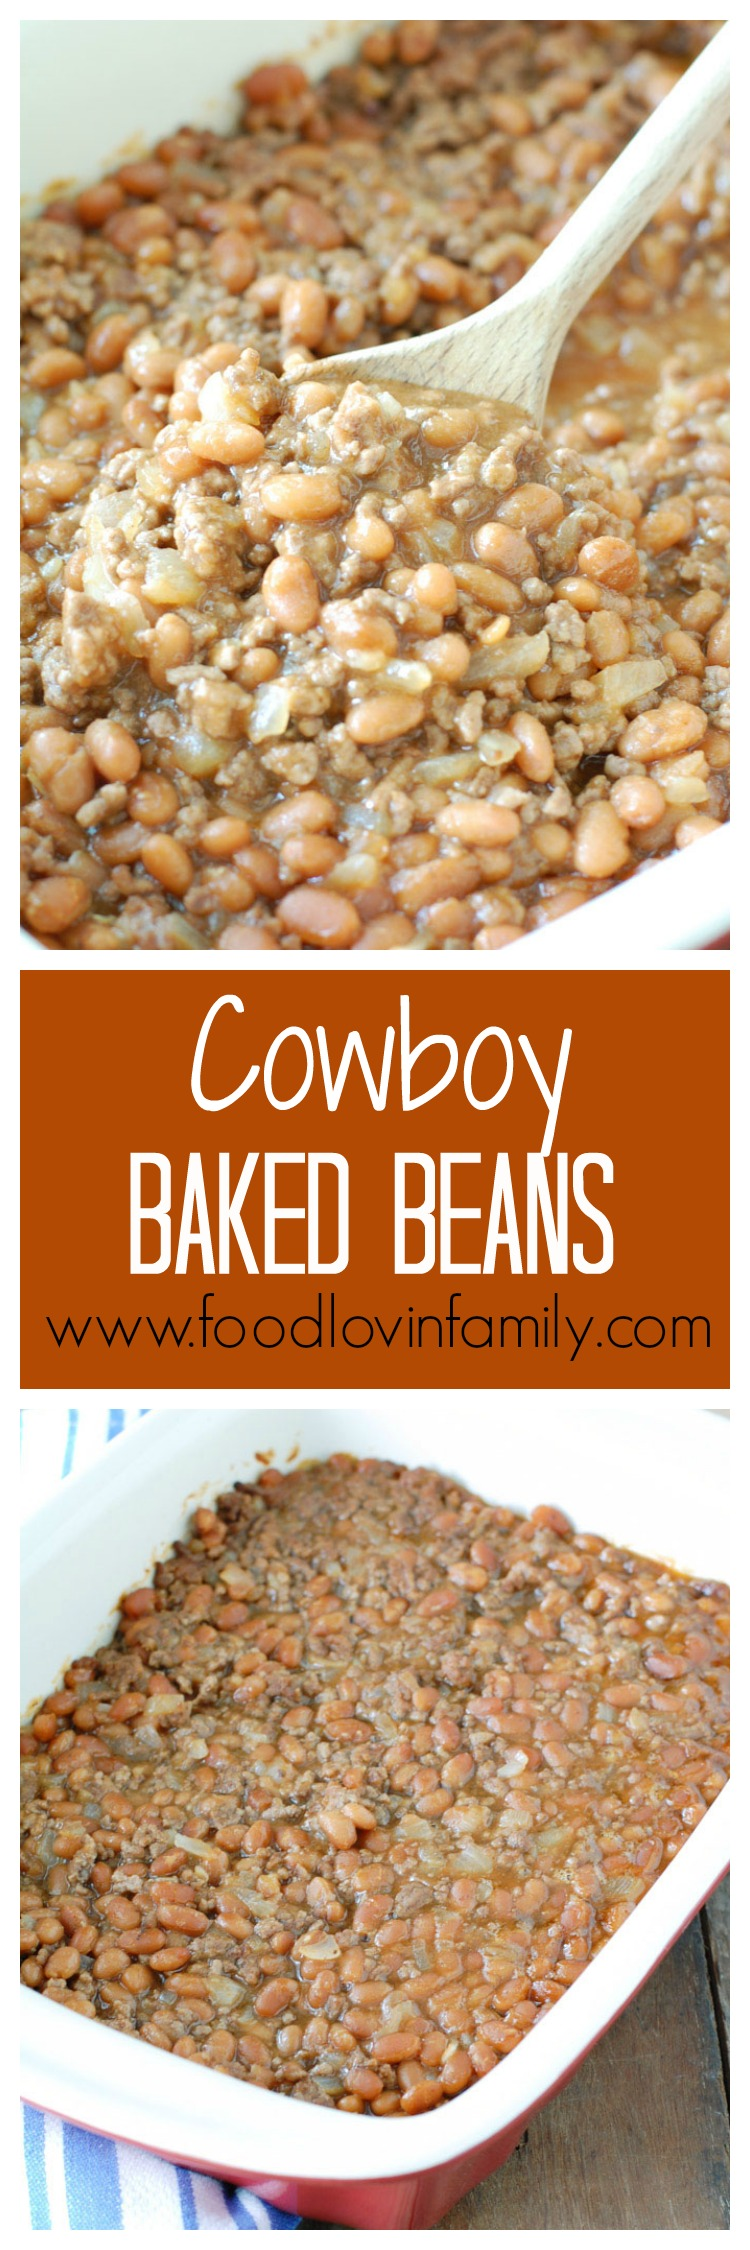 Cowboy Baked Beans are a staple at our house during the summer. Adding in some ground beef, onion and yes even brown sugar set them apart from original baked beans. This makes a great addition to potlucks, BBQ's and dinner.